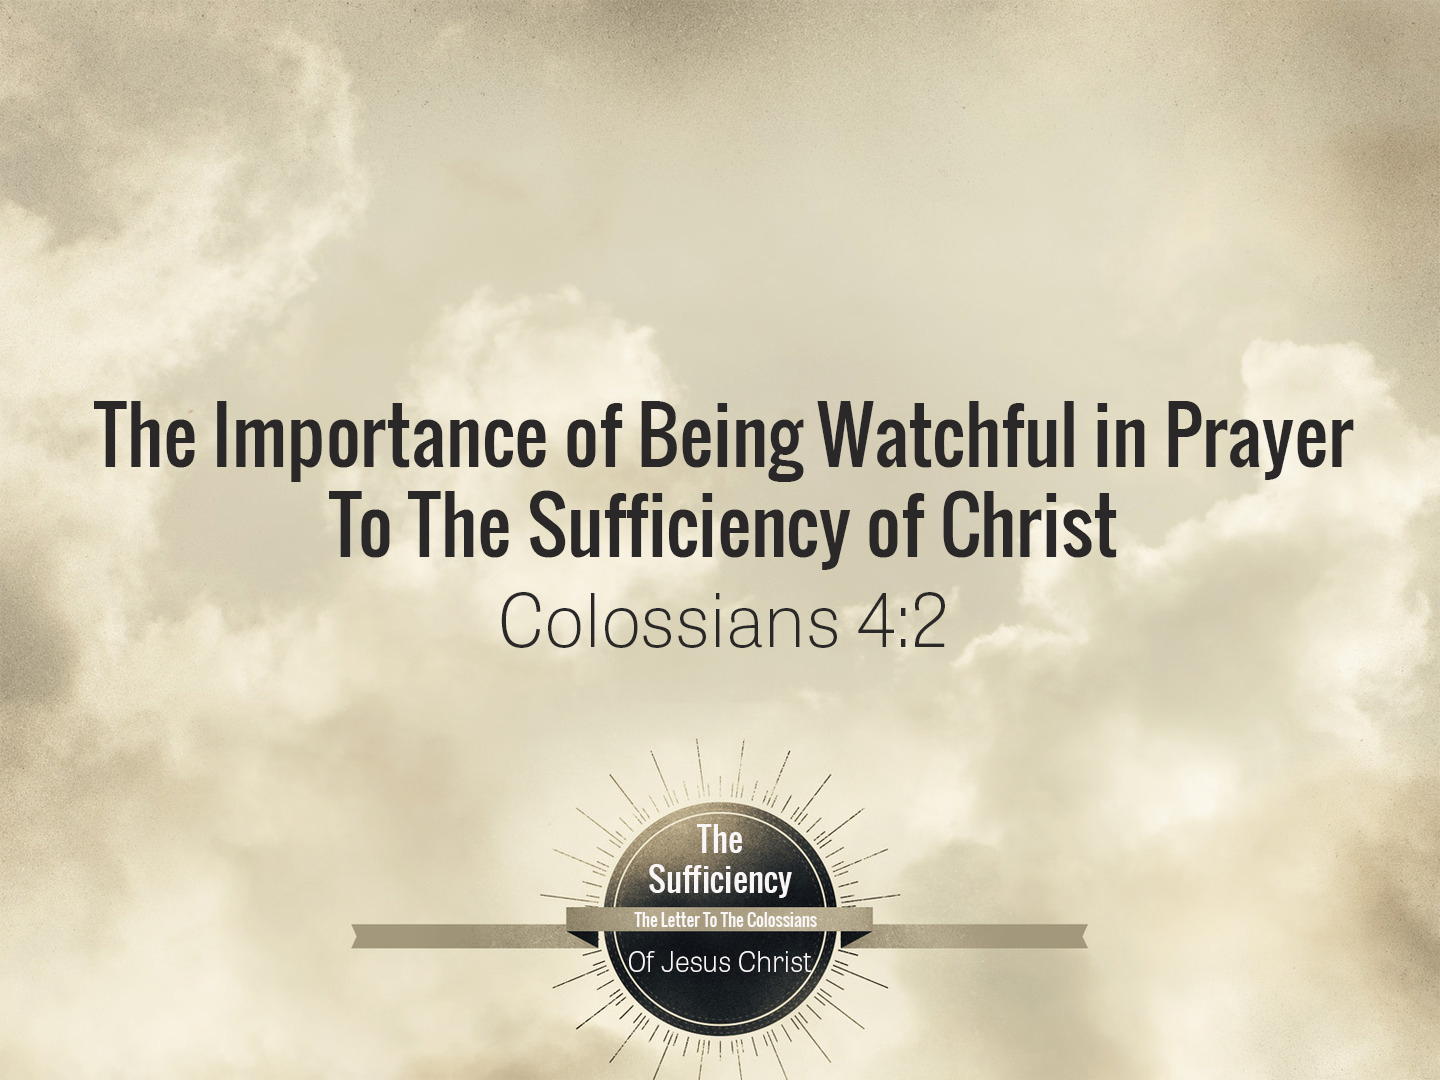 Colossians 4v2 The Importance of Being Watchful in Prayer To the Sufficiency of Christ